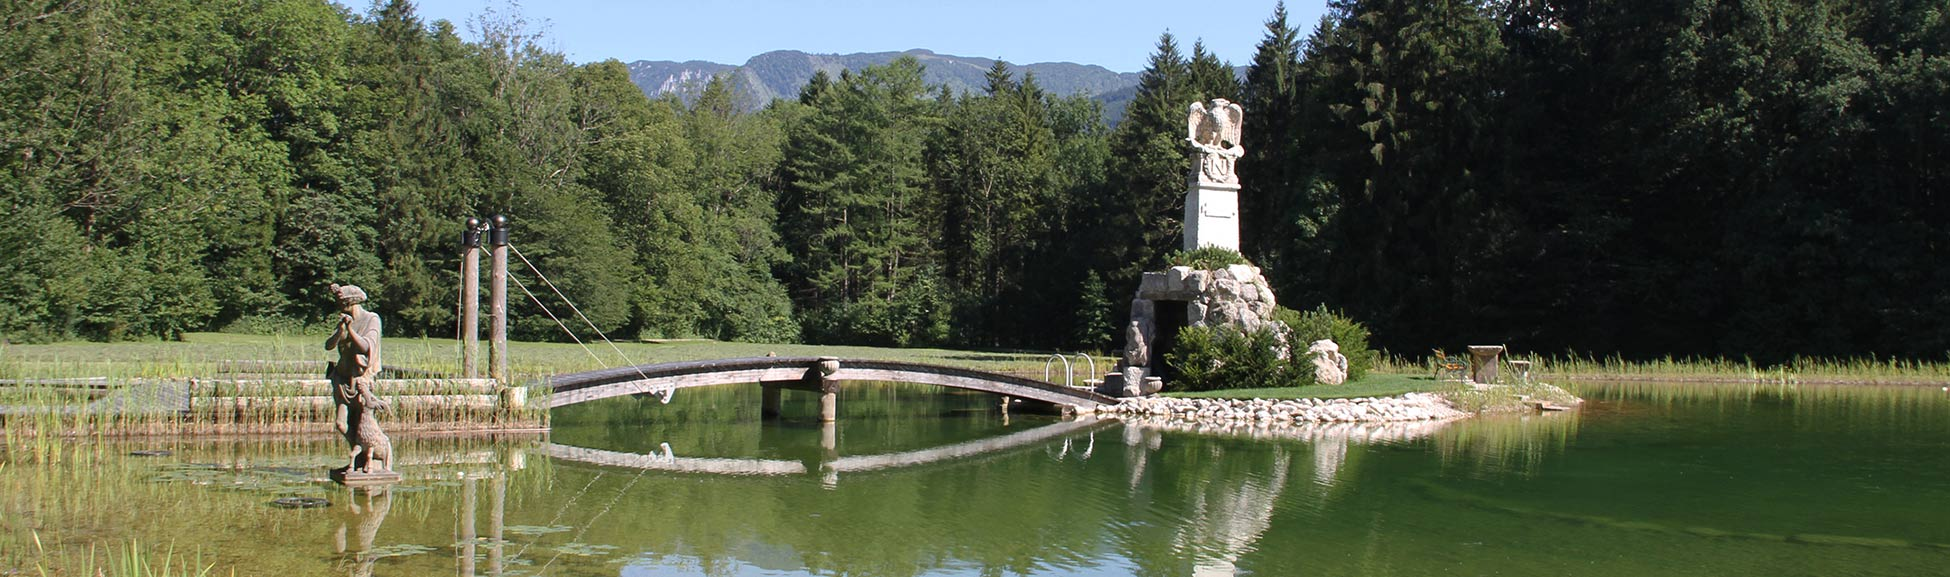 ZEBAU  - Austrian pools - swimingpools and garden ponds